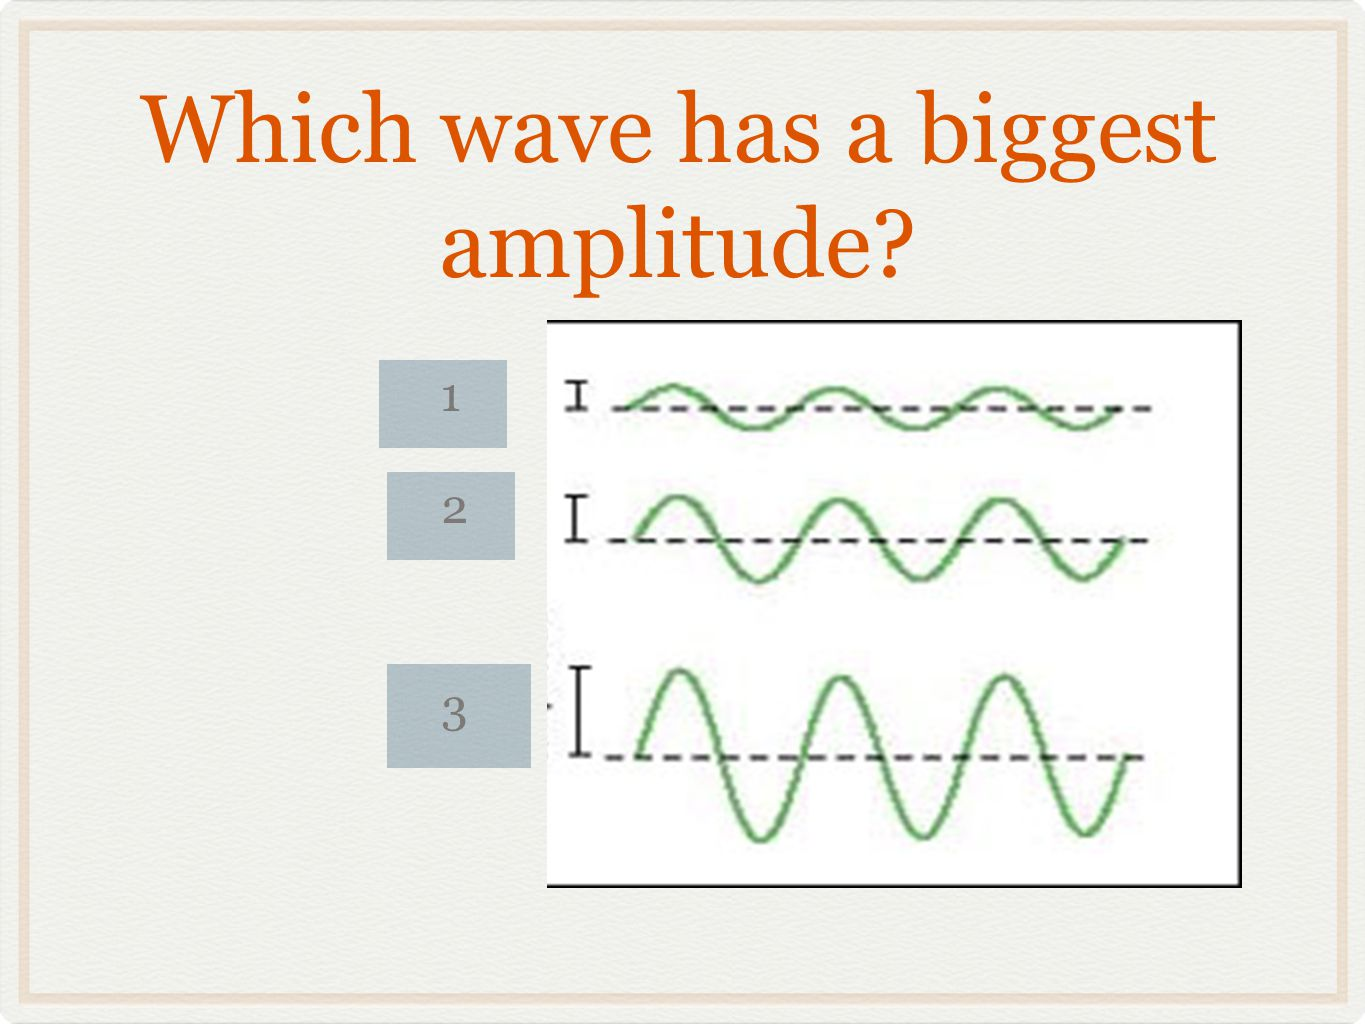 Which wave has a biggest amplitude